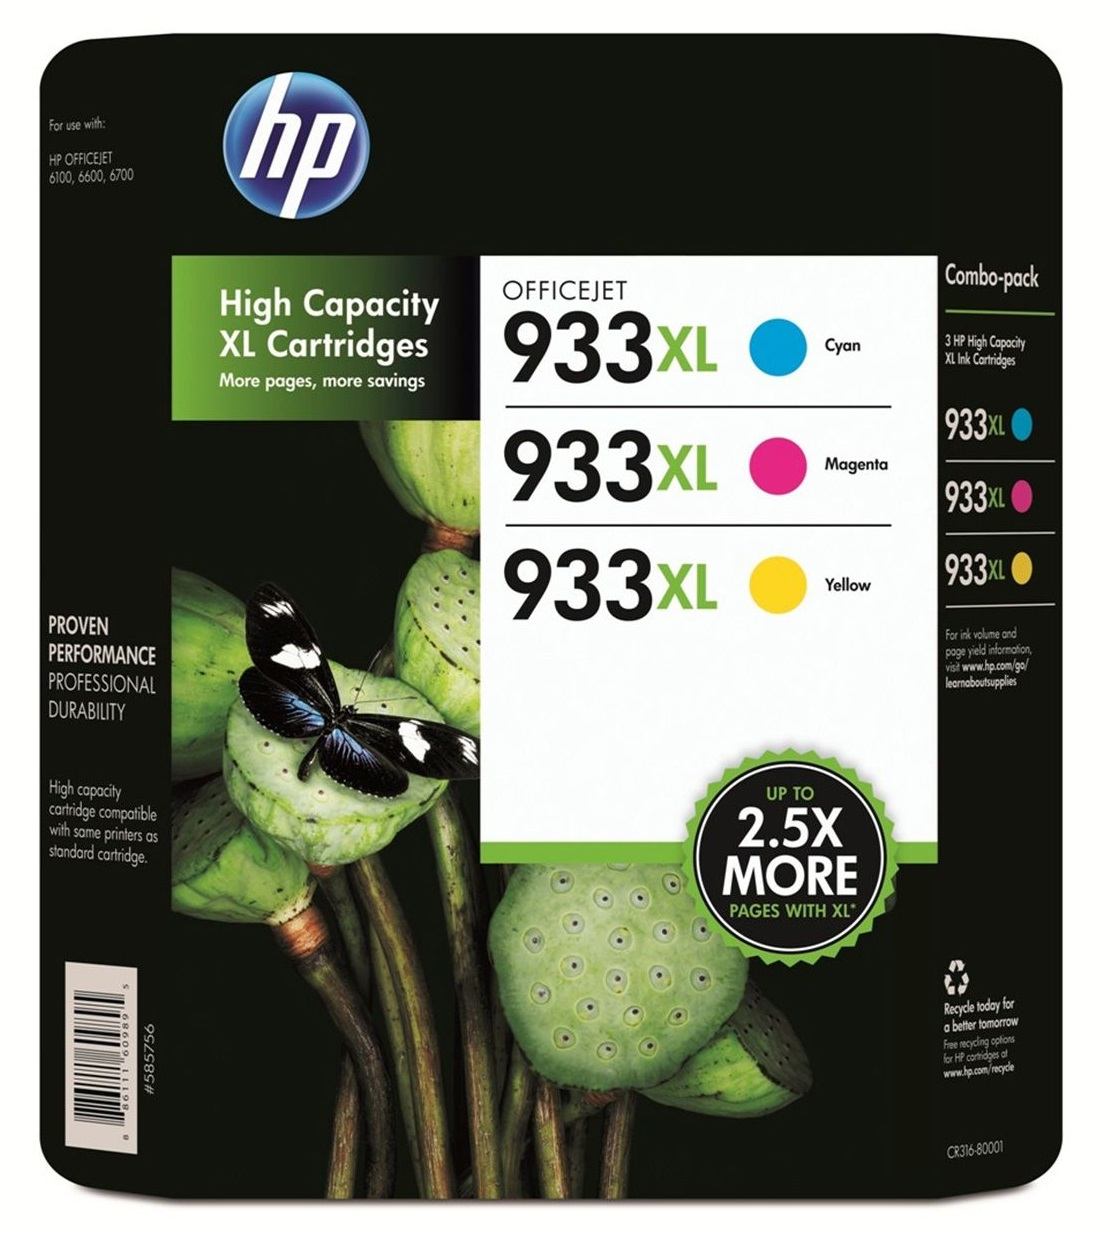 HP 933XL Officejet Ink Cartridge Color by HP